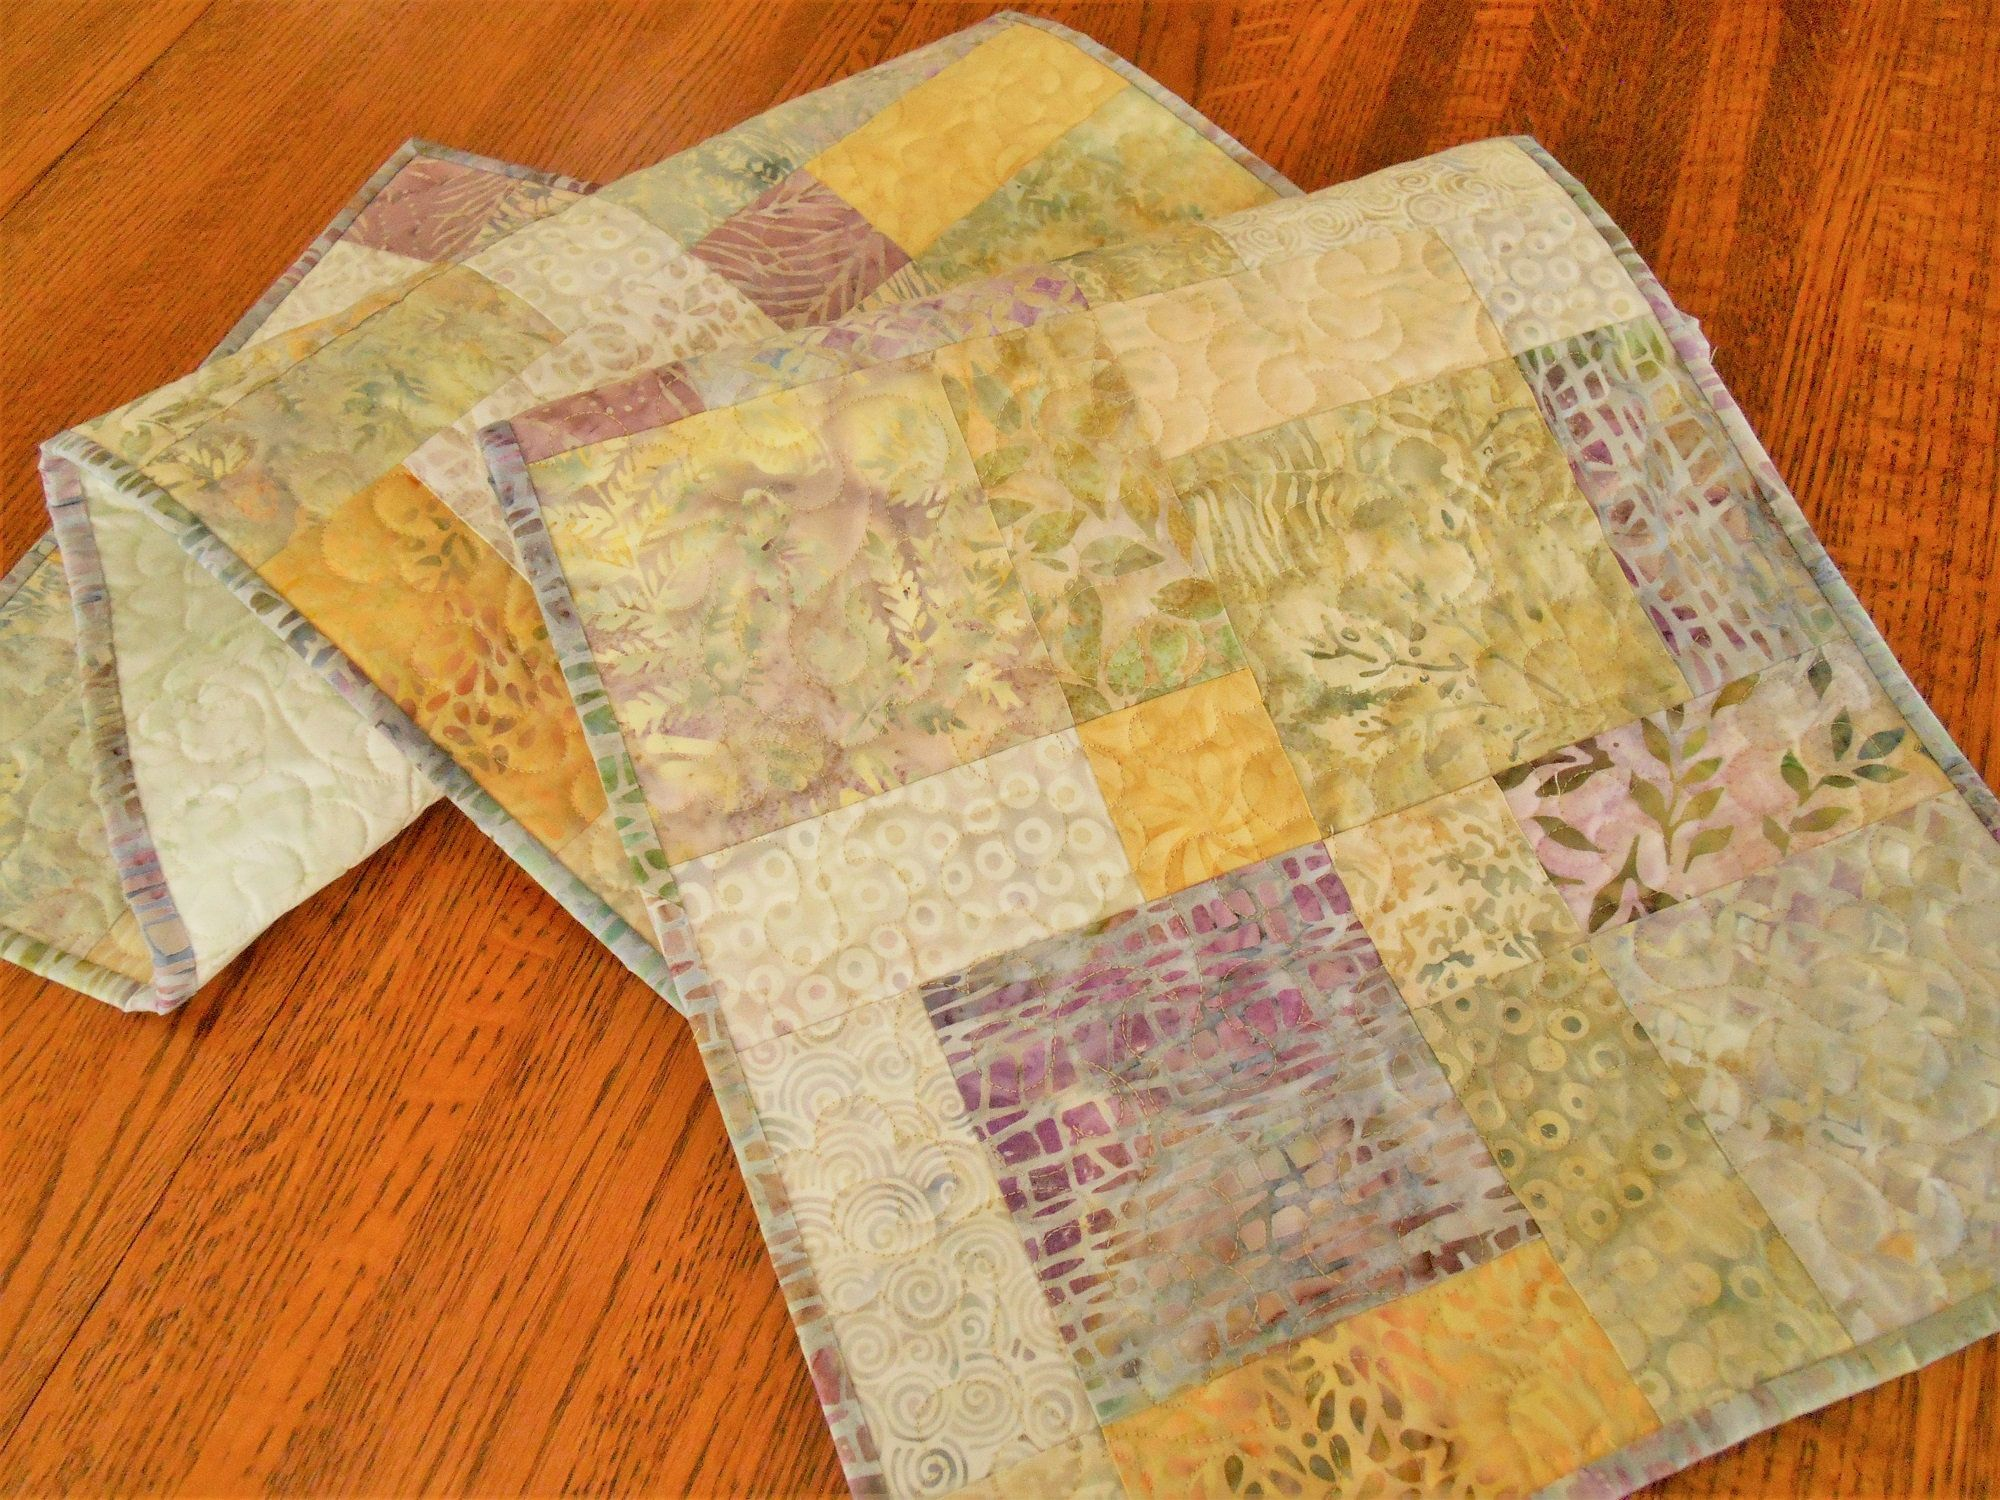 Quilted Batik Table Runner In Shades Of Lavender Yellow Green Bedroom Decor Dresser Runner Bureau Scarf Na Batik Table Runners Quilted Table Runners Quilts